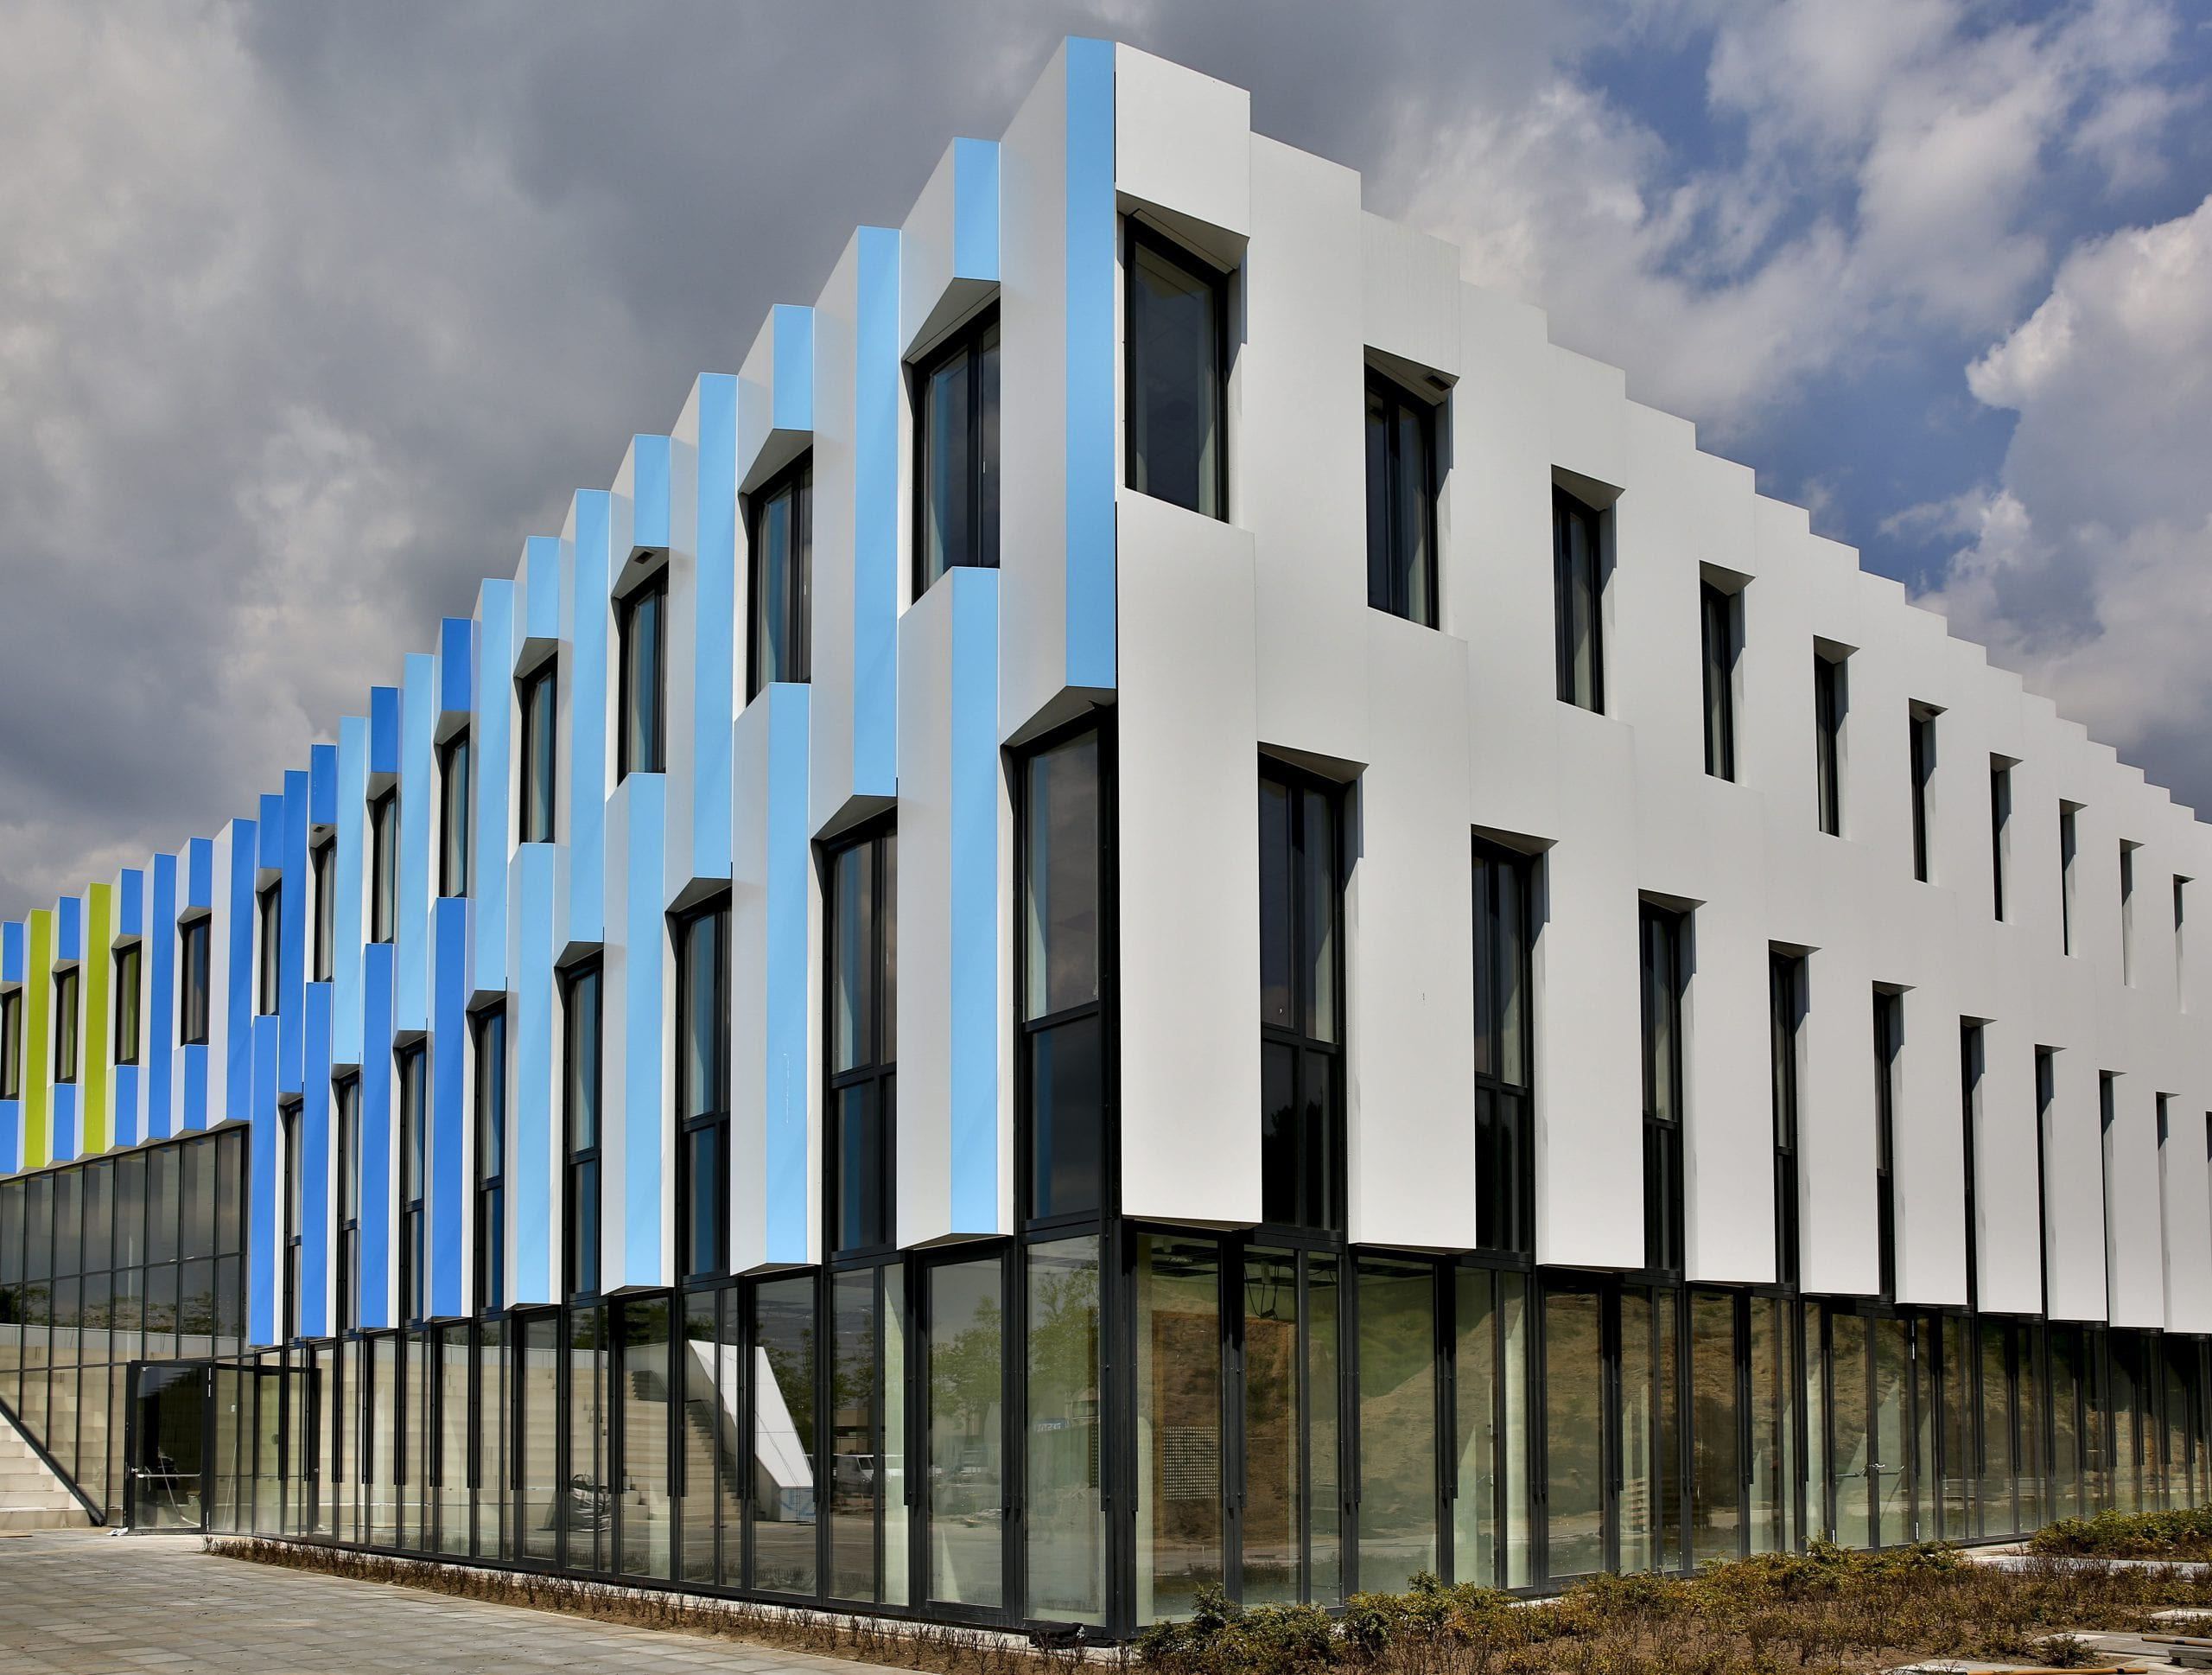 Nieuwbouw Frits Philips Lyceum te Eindhoven